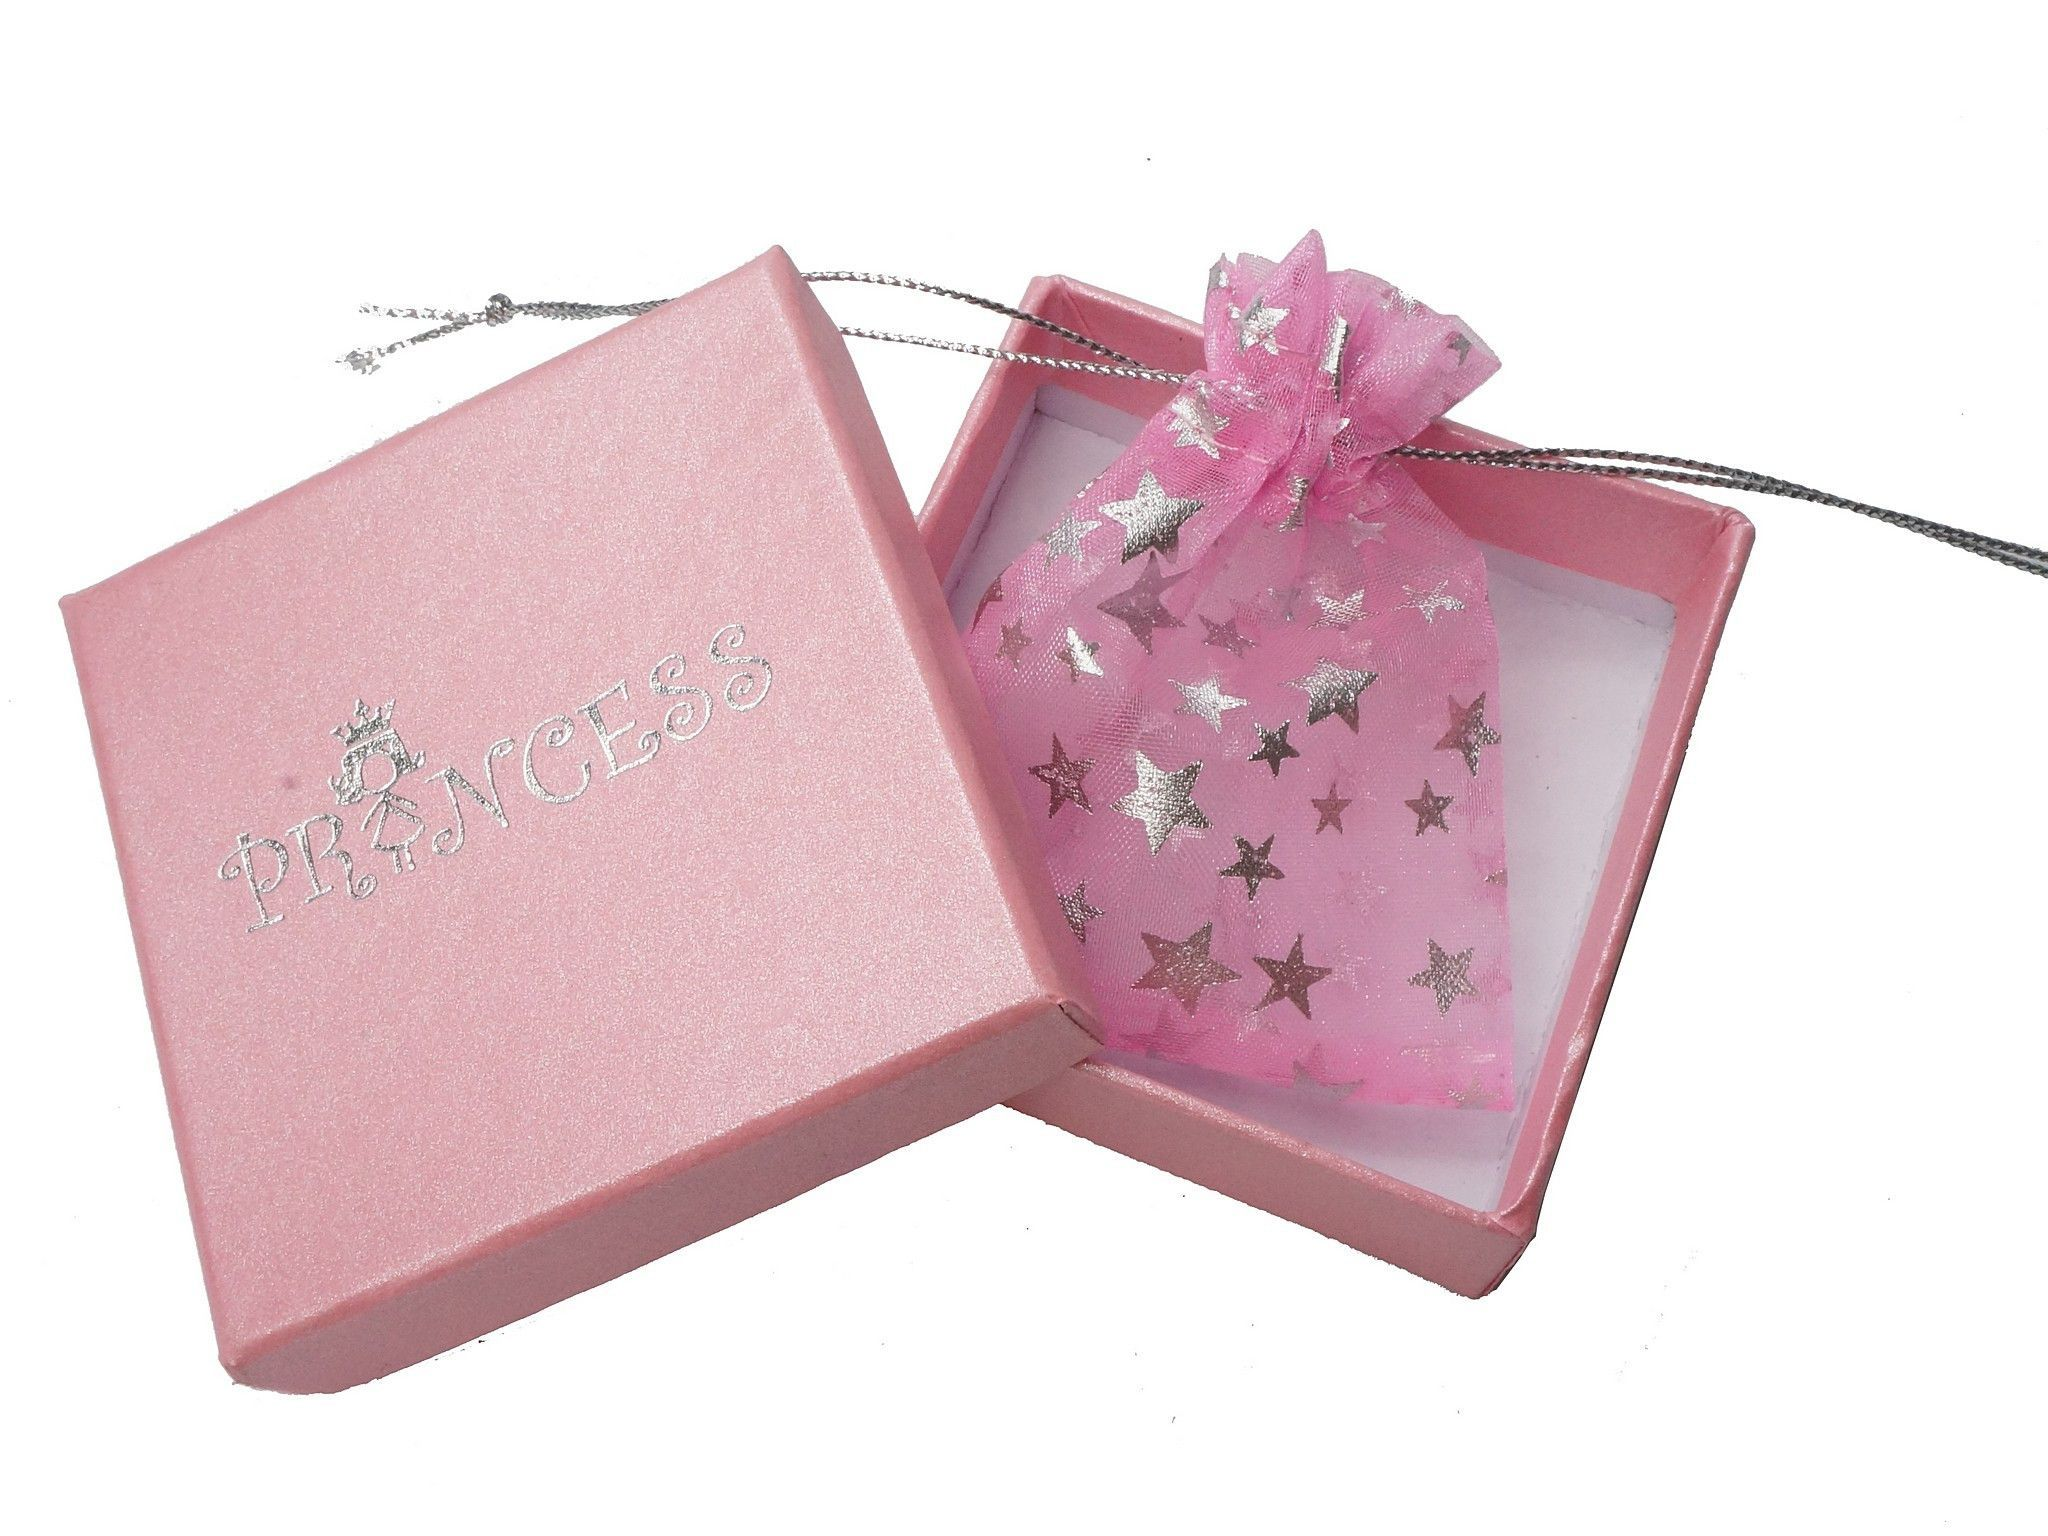 6*6*2.5cm Princess Pink Jewelry Gift Box with Drawstring Pouch, 18 ...